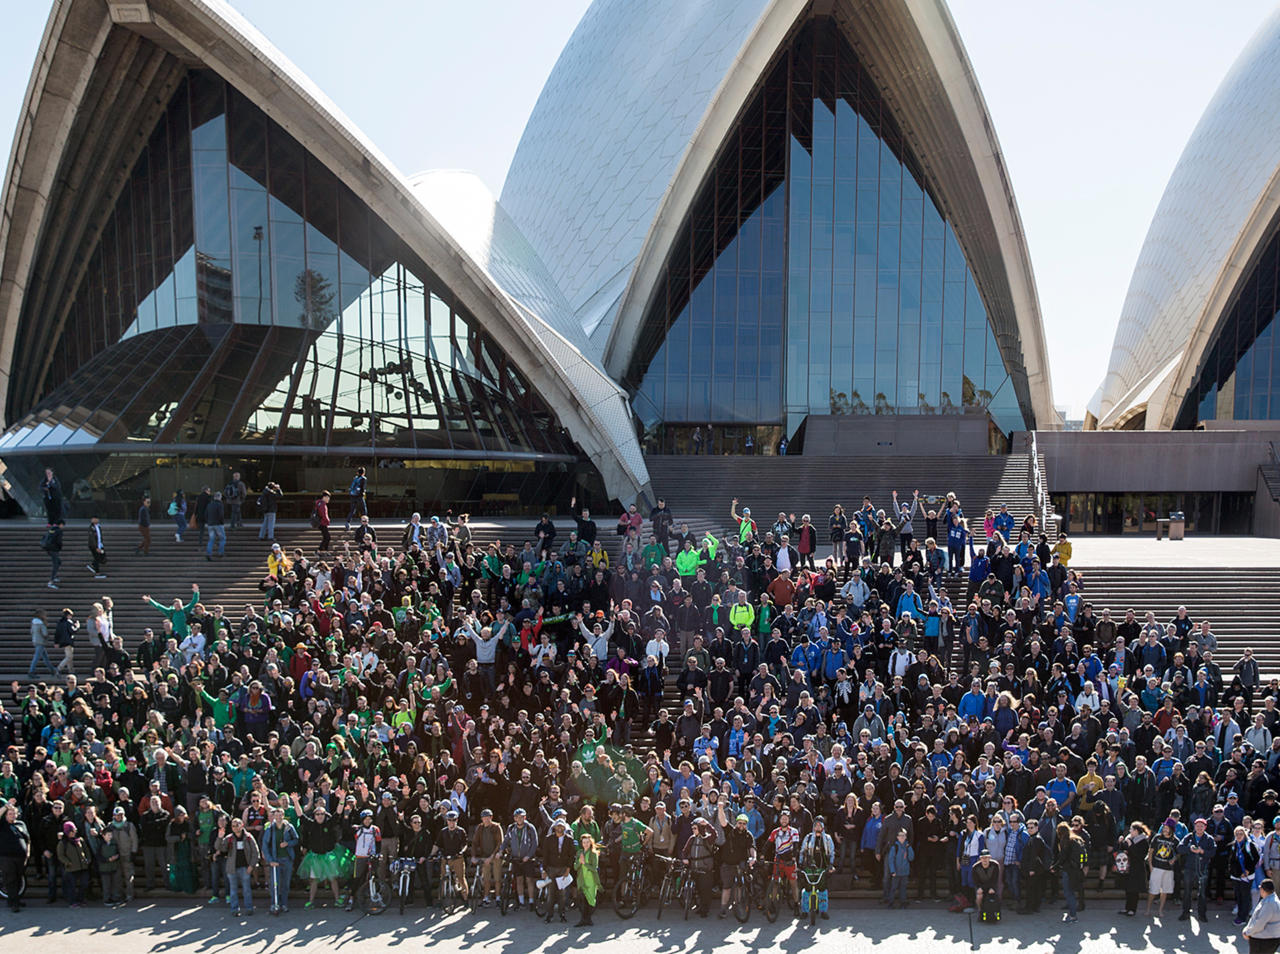 Ingress players gather at the Sydney Opera House on June 25, 2016